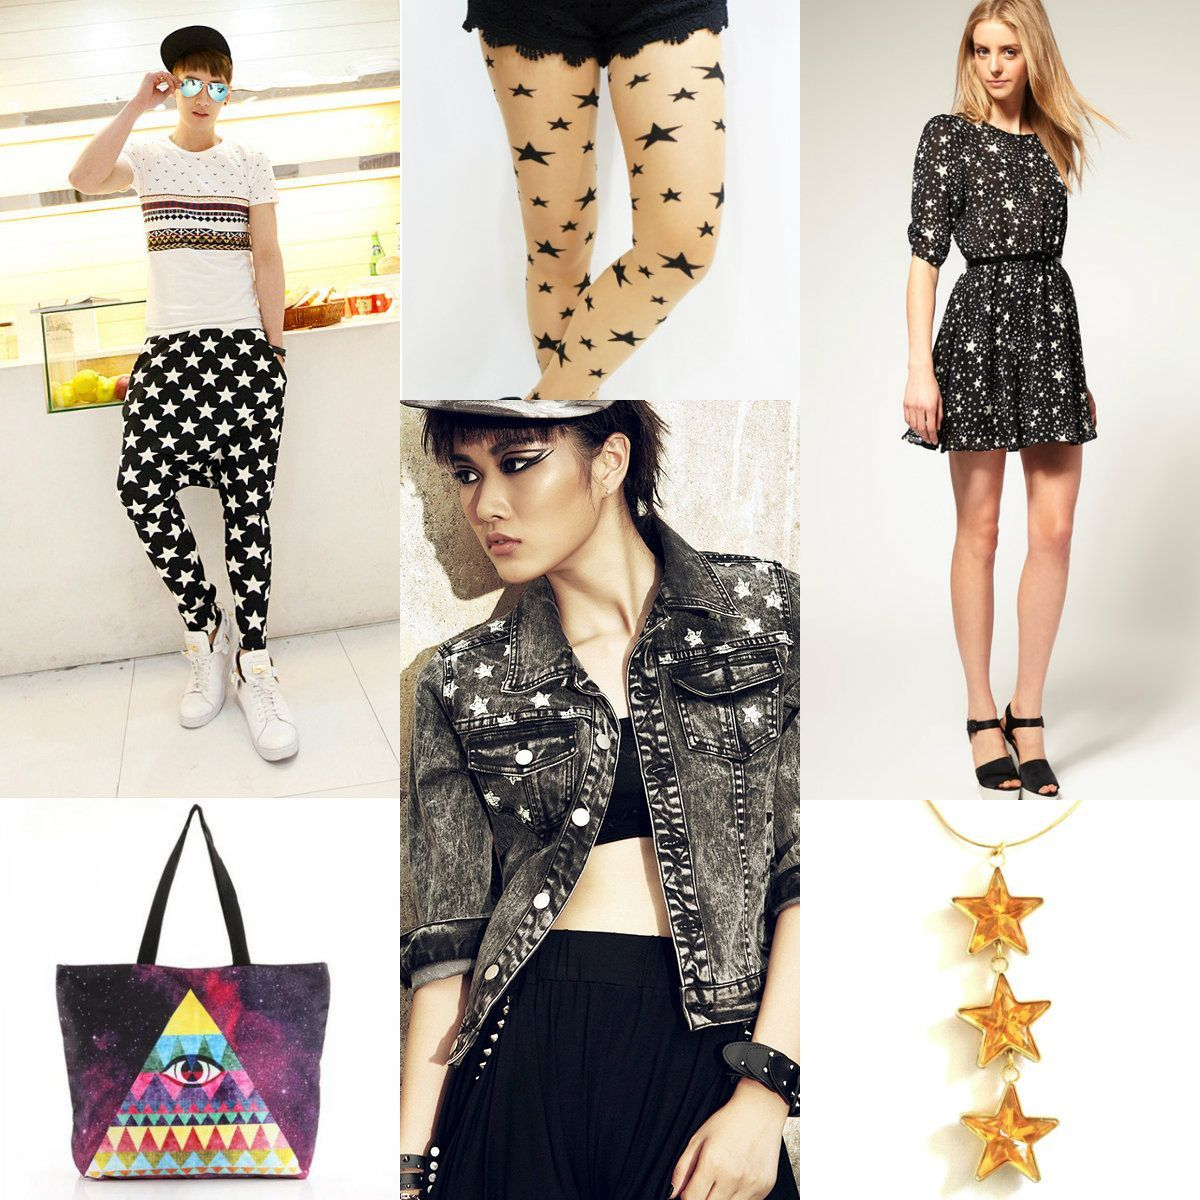 Written In the Stars : Top 3 Starry Fashion Looks